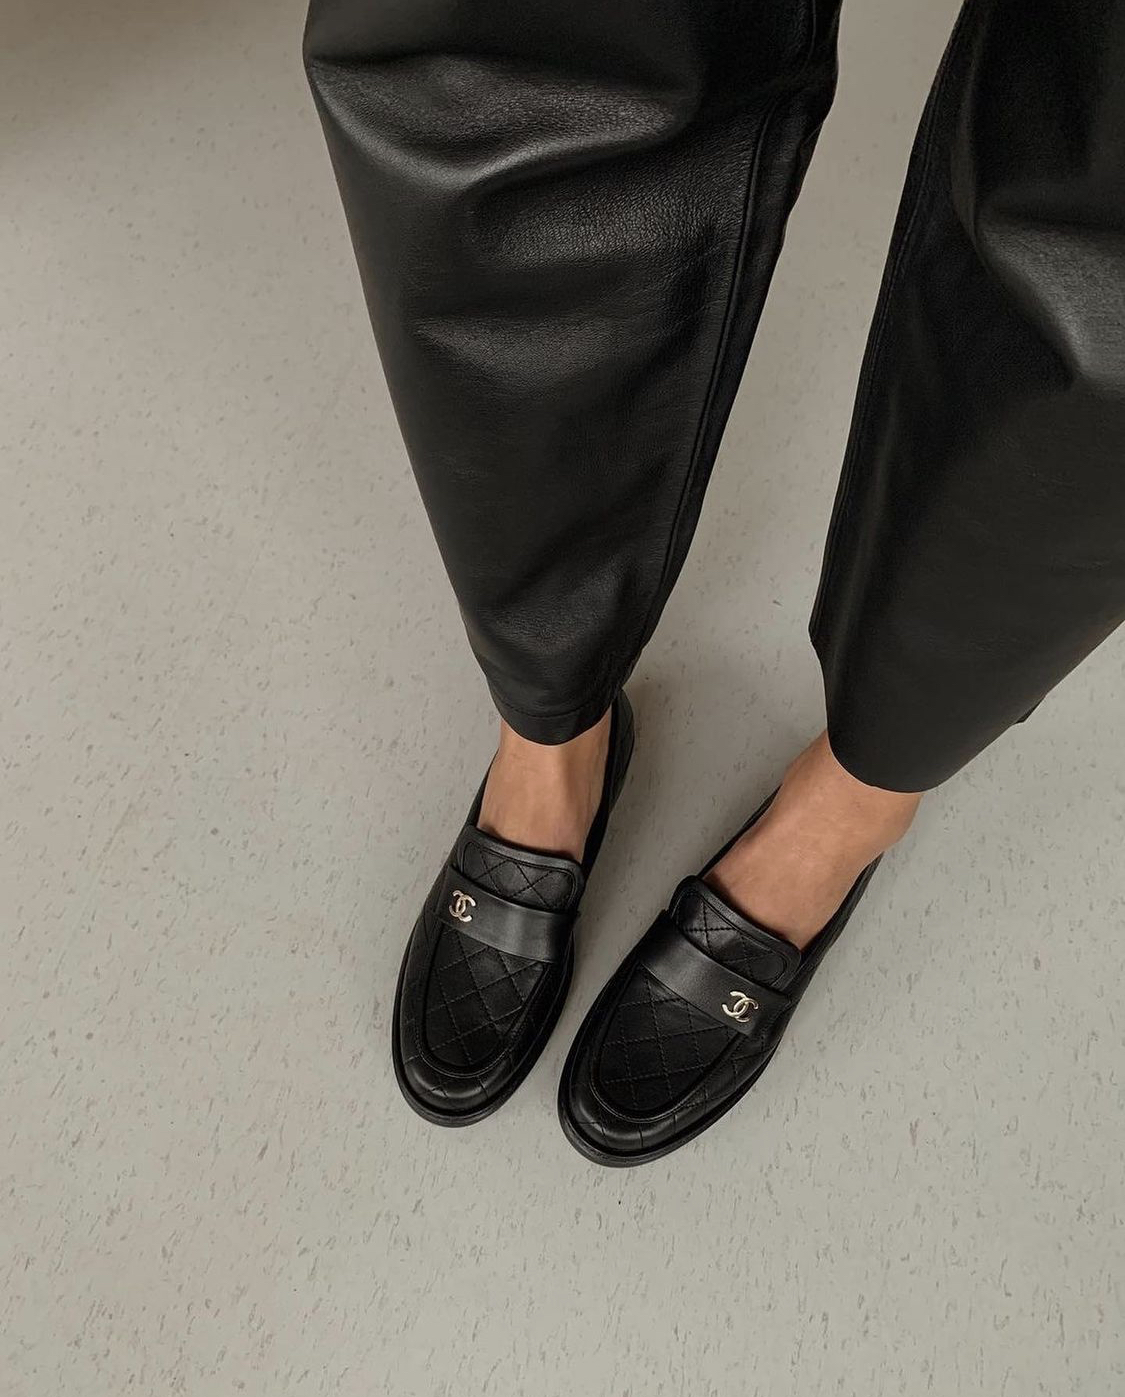 Penny Loafers Chanel